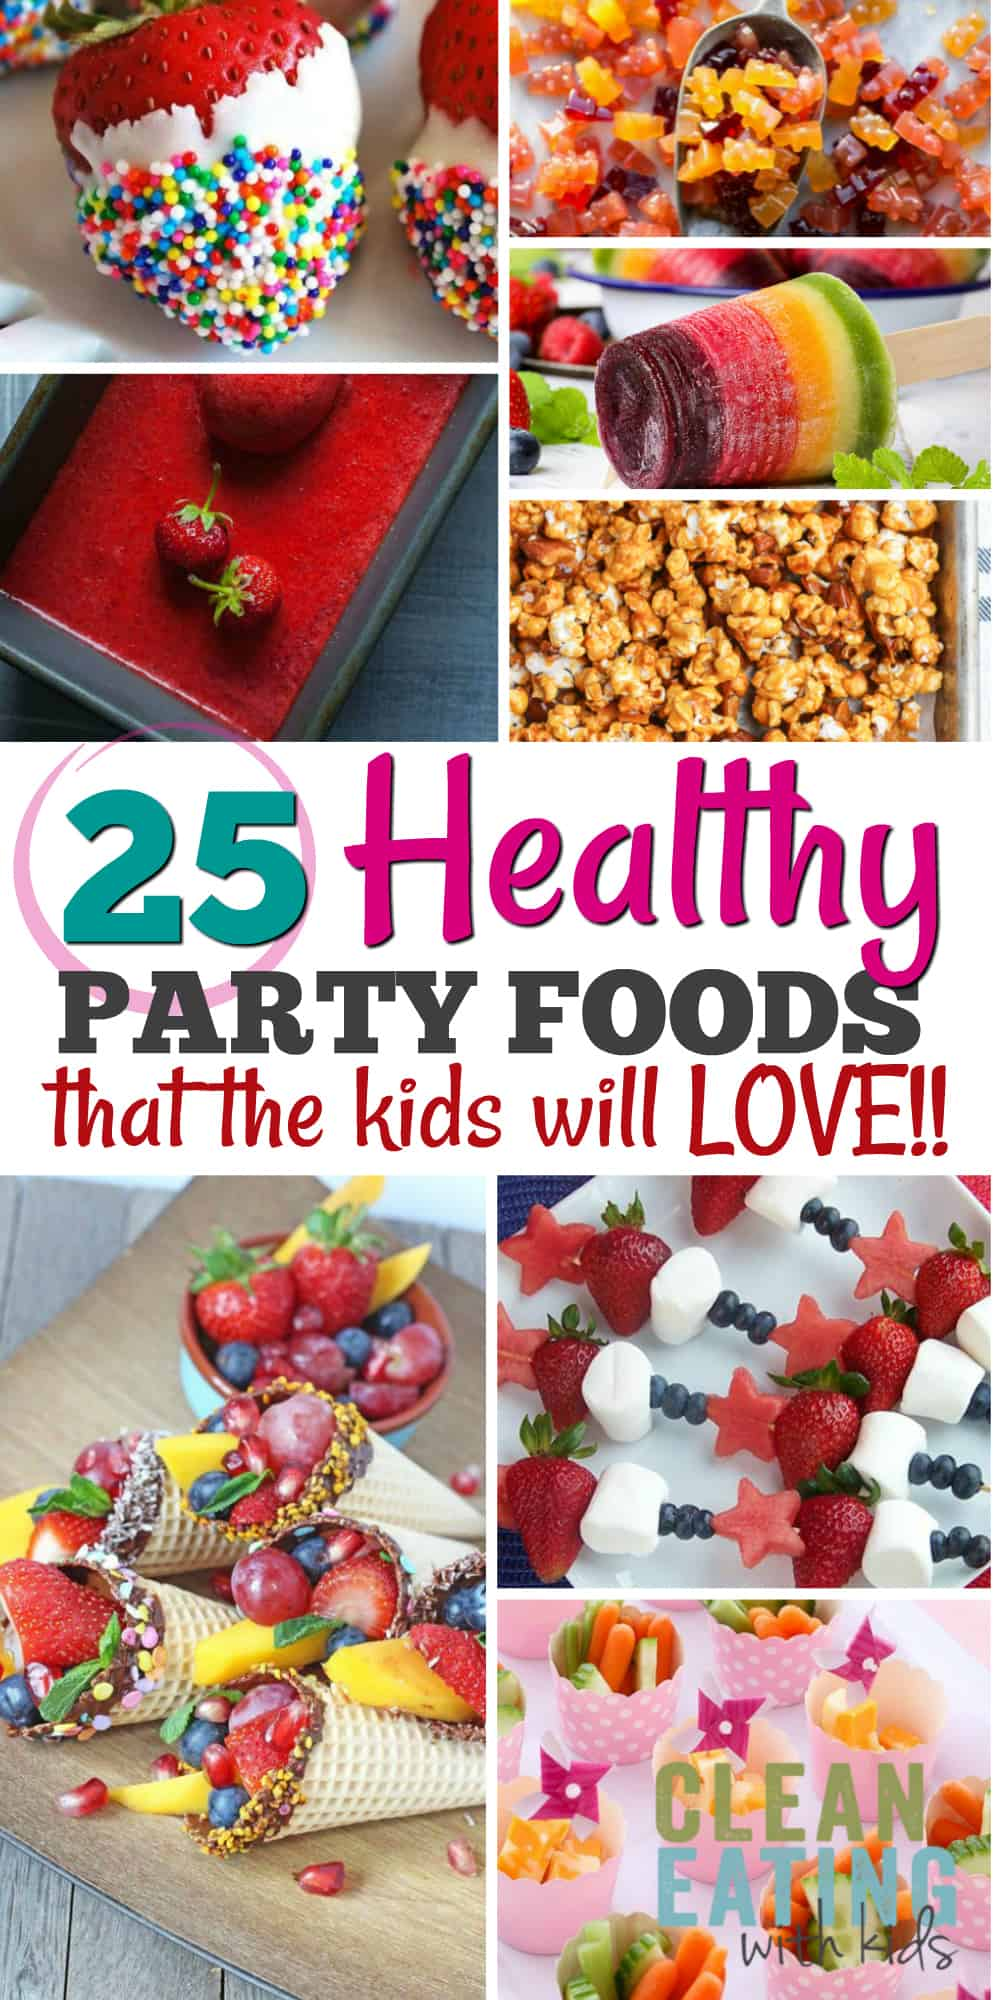 25 Healthy Birthday Party Food Ideas That The Kids Will LOVE